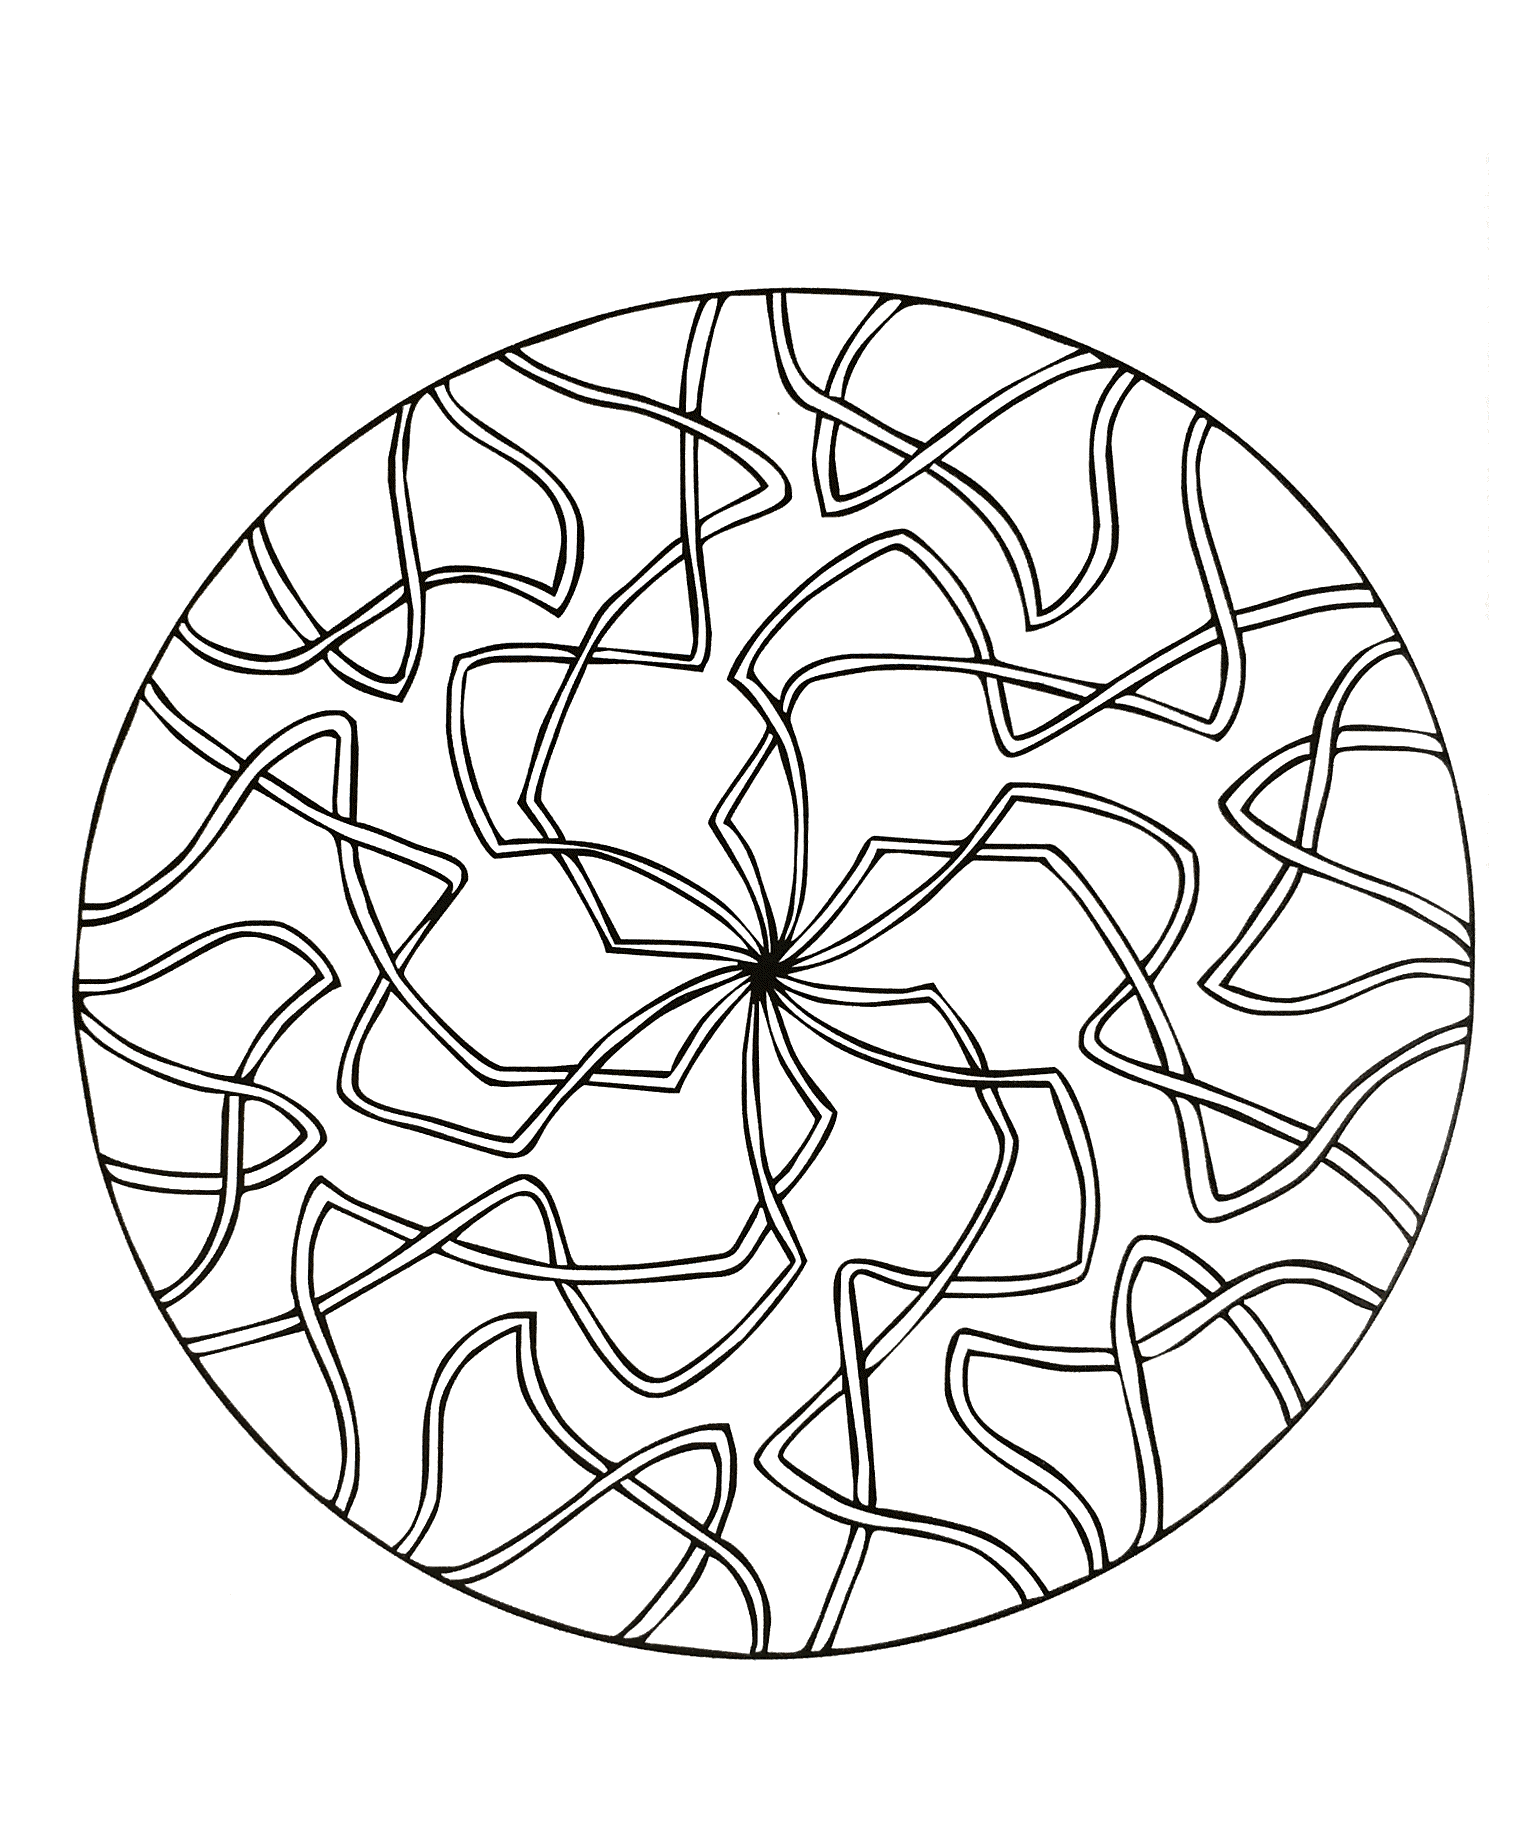 Mandalas to download for free 15 - M&alas Adult Coloring ...